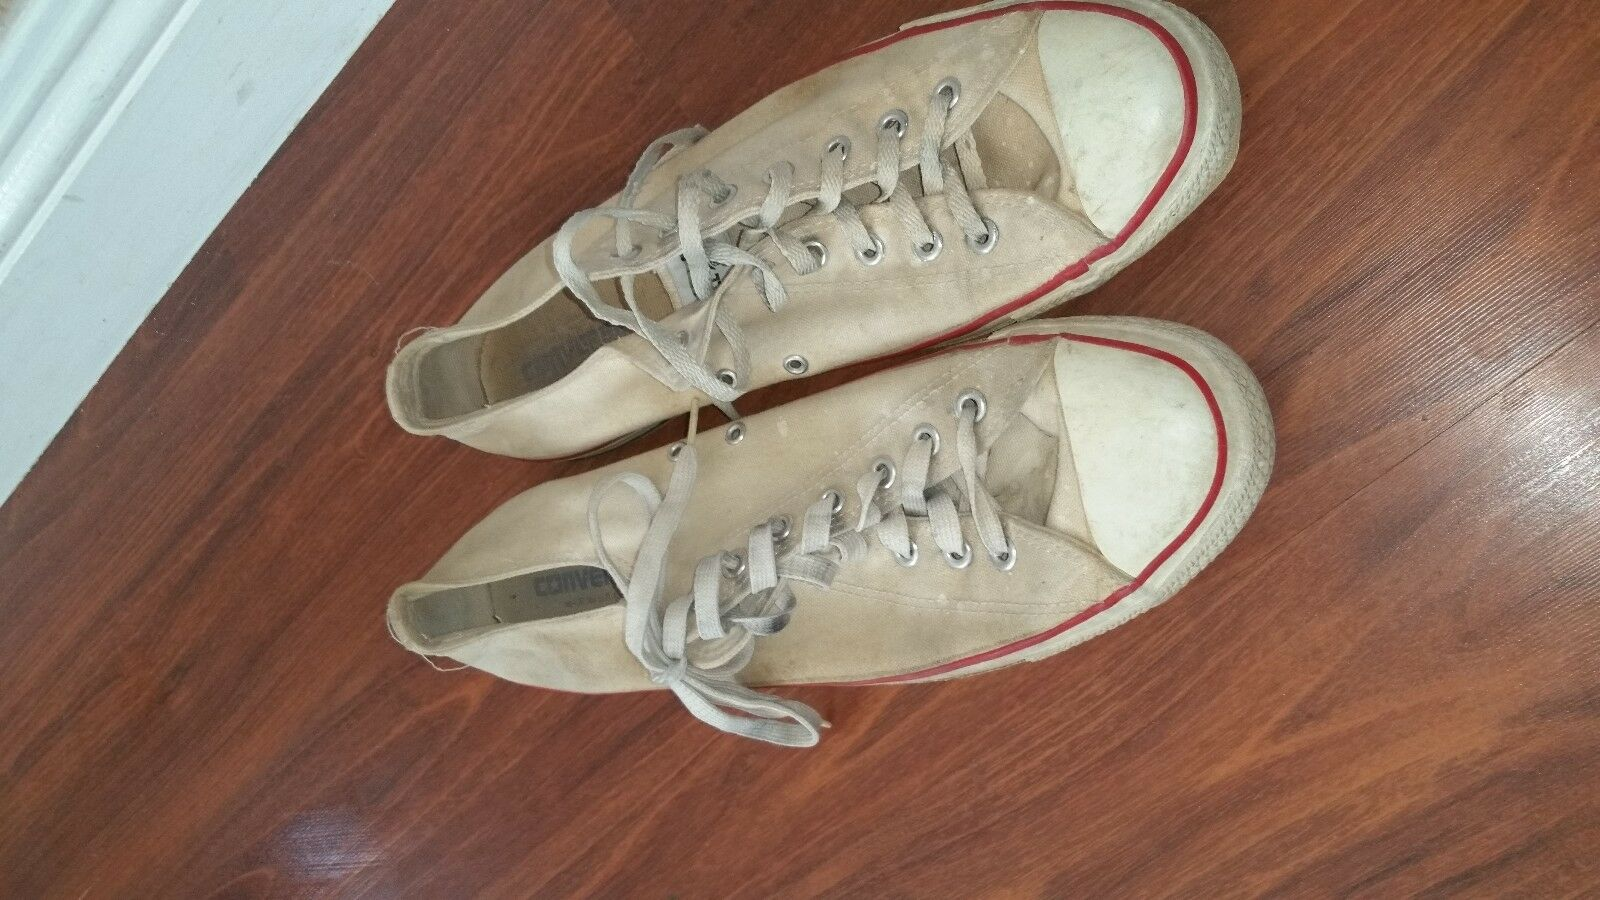 Vintage USA-MADE Converse All Star Chuck Taylor shoes white size 13